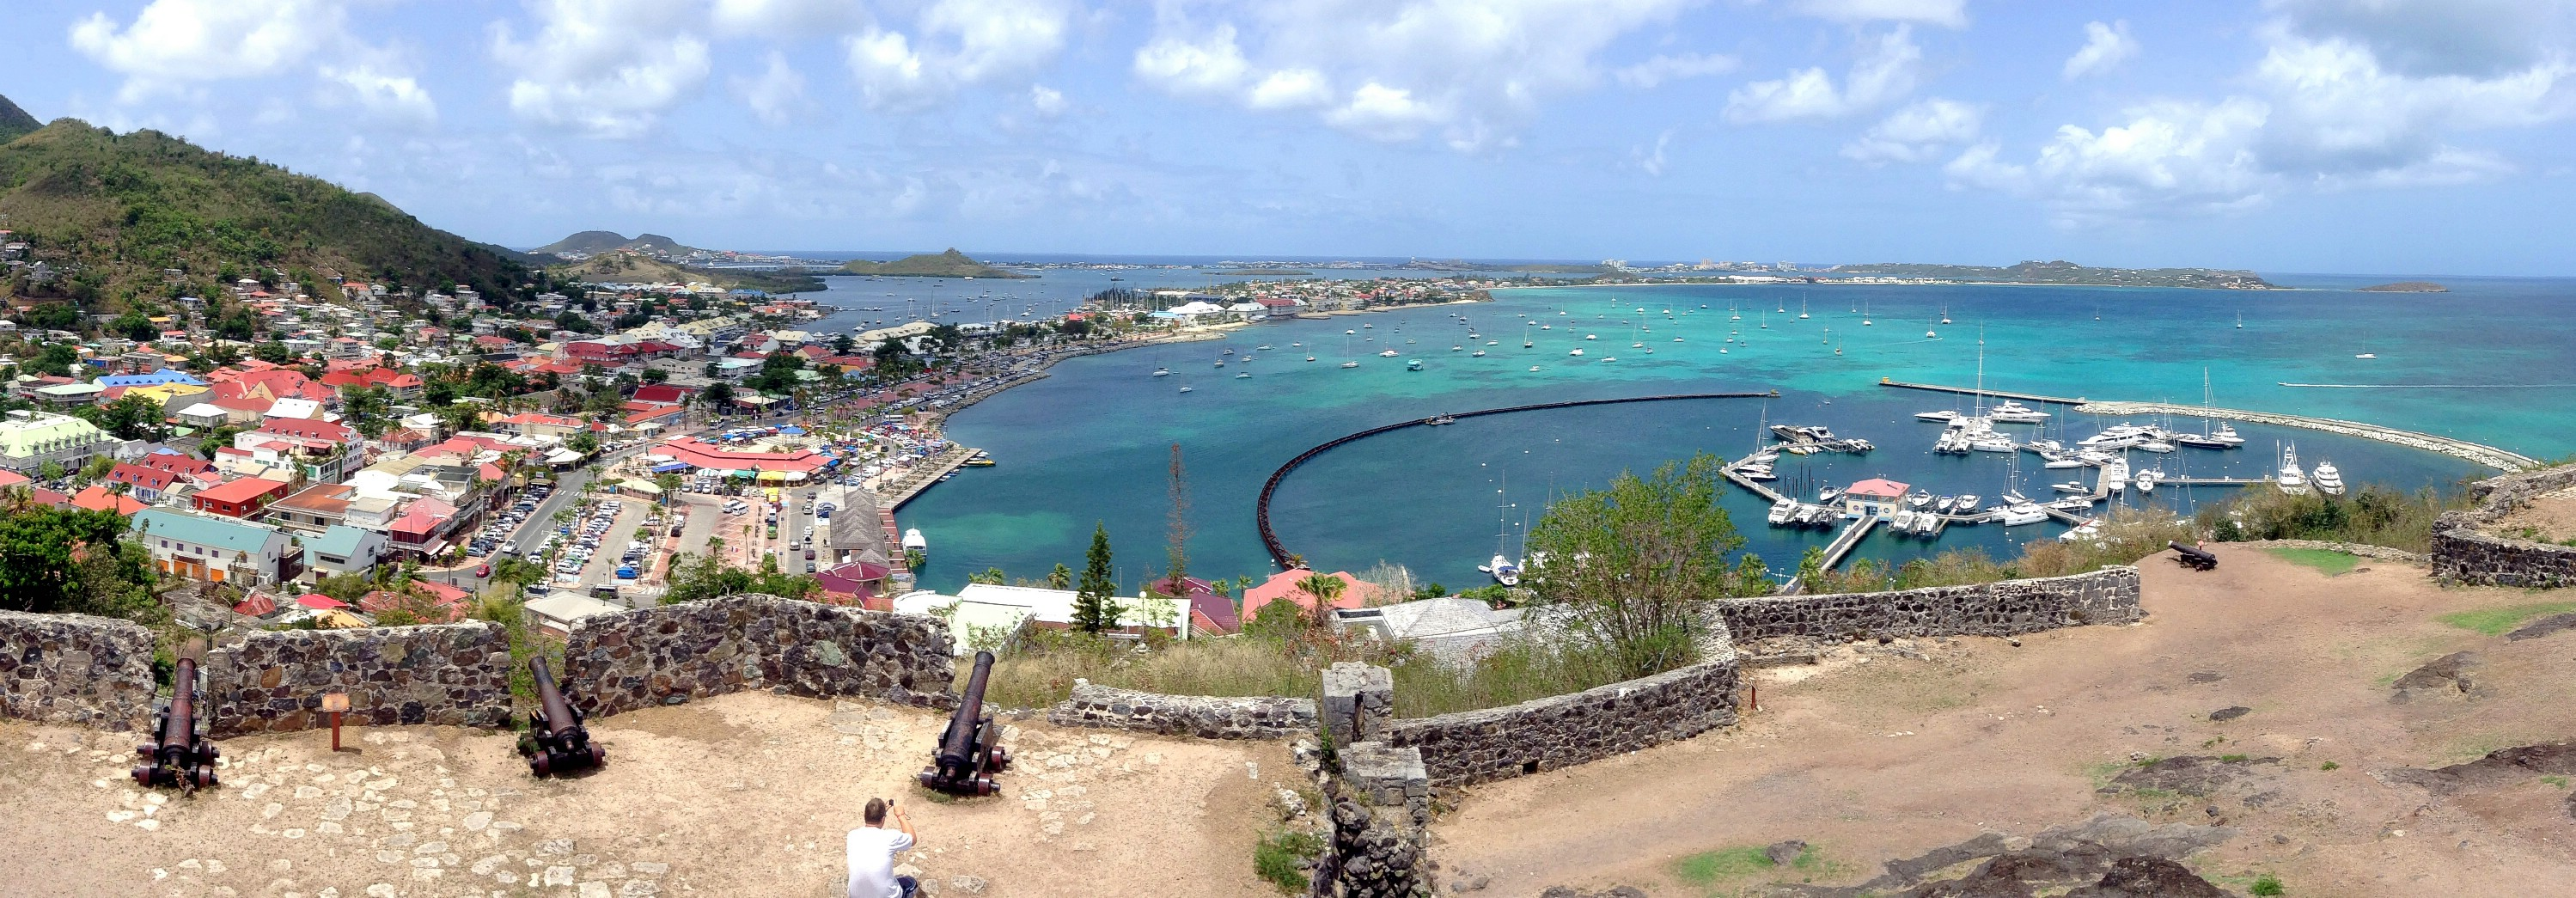 A panorama of the view from Fort Louis overlooking the town of Marigot, Saint Martin, Lesser Antilles. June 8, 2015.